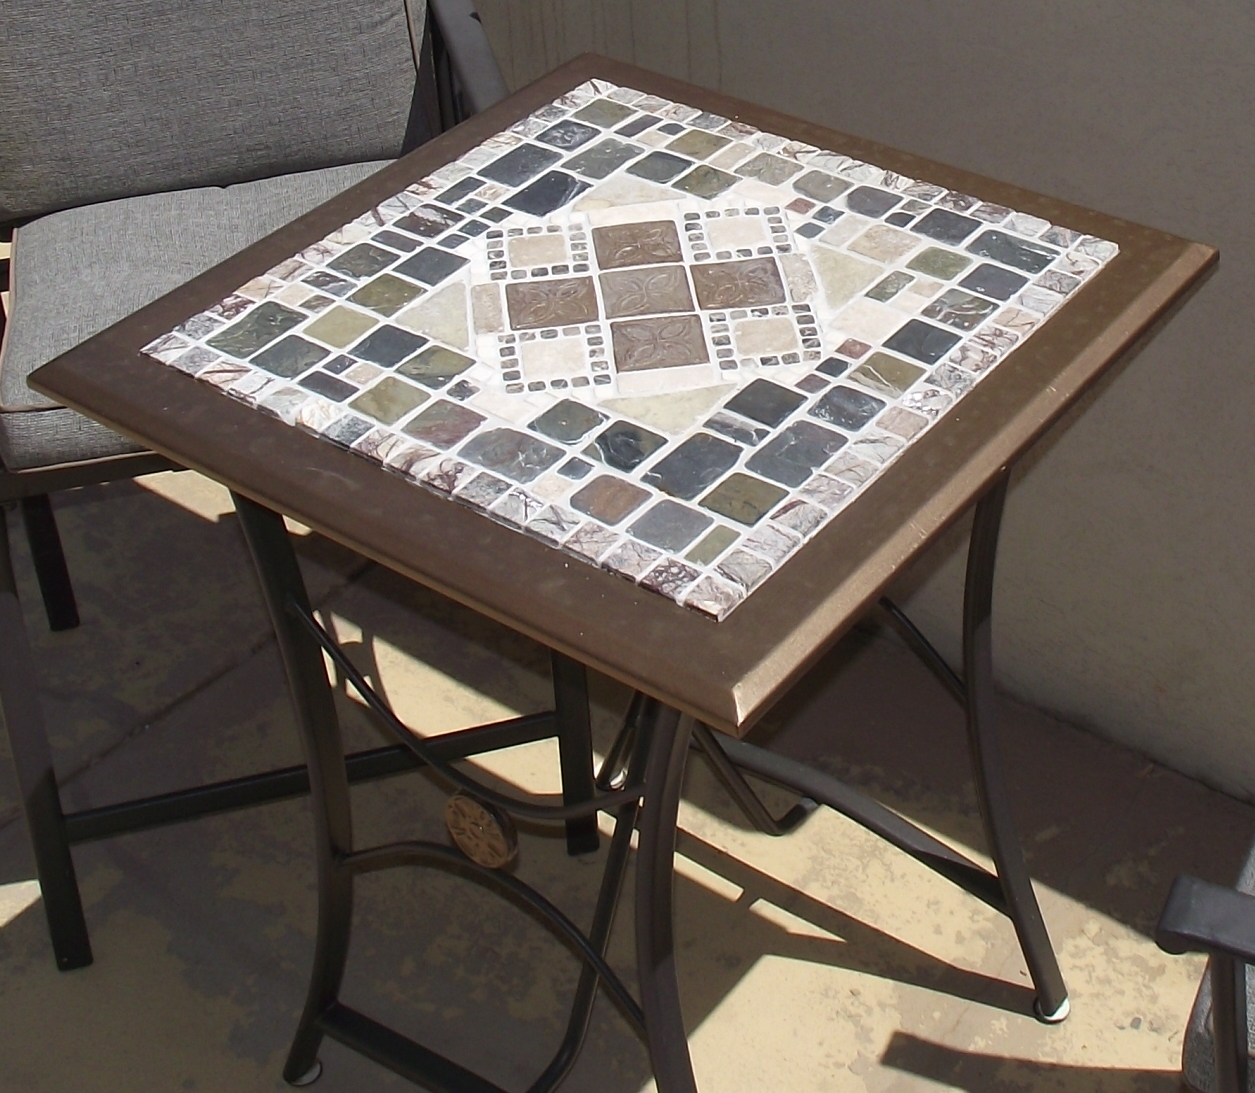 mosaic tile patio table upcycled glass accent top outdoor cymbal bag west elm wooden bedside designs console with sliding barn doors black plastic side used office furniture